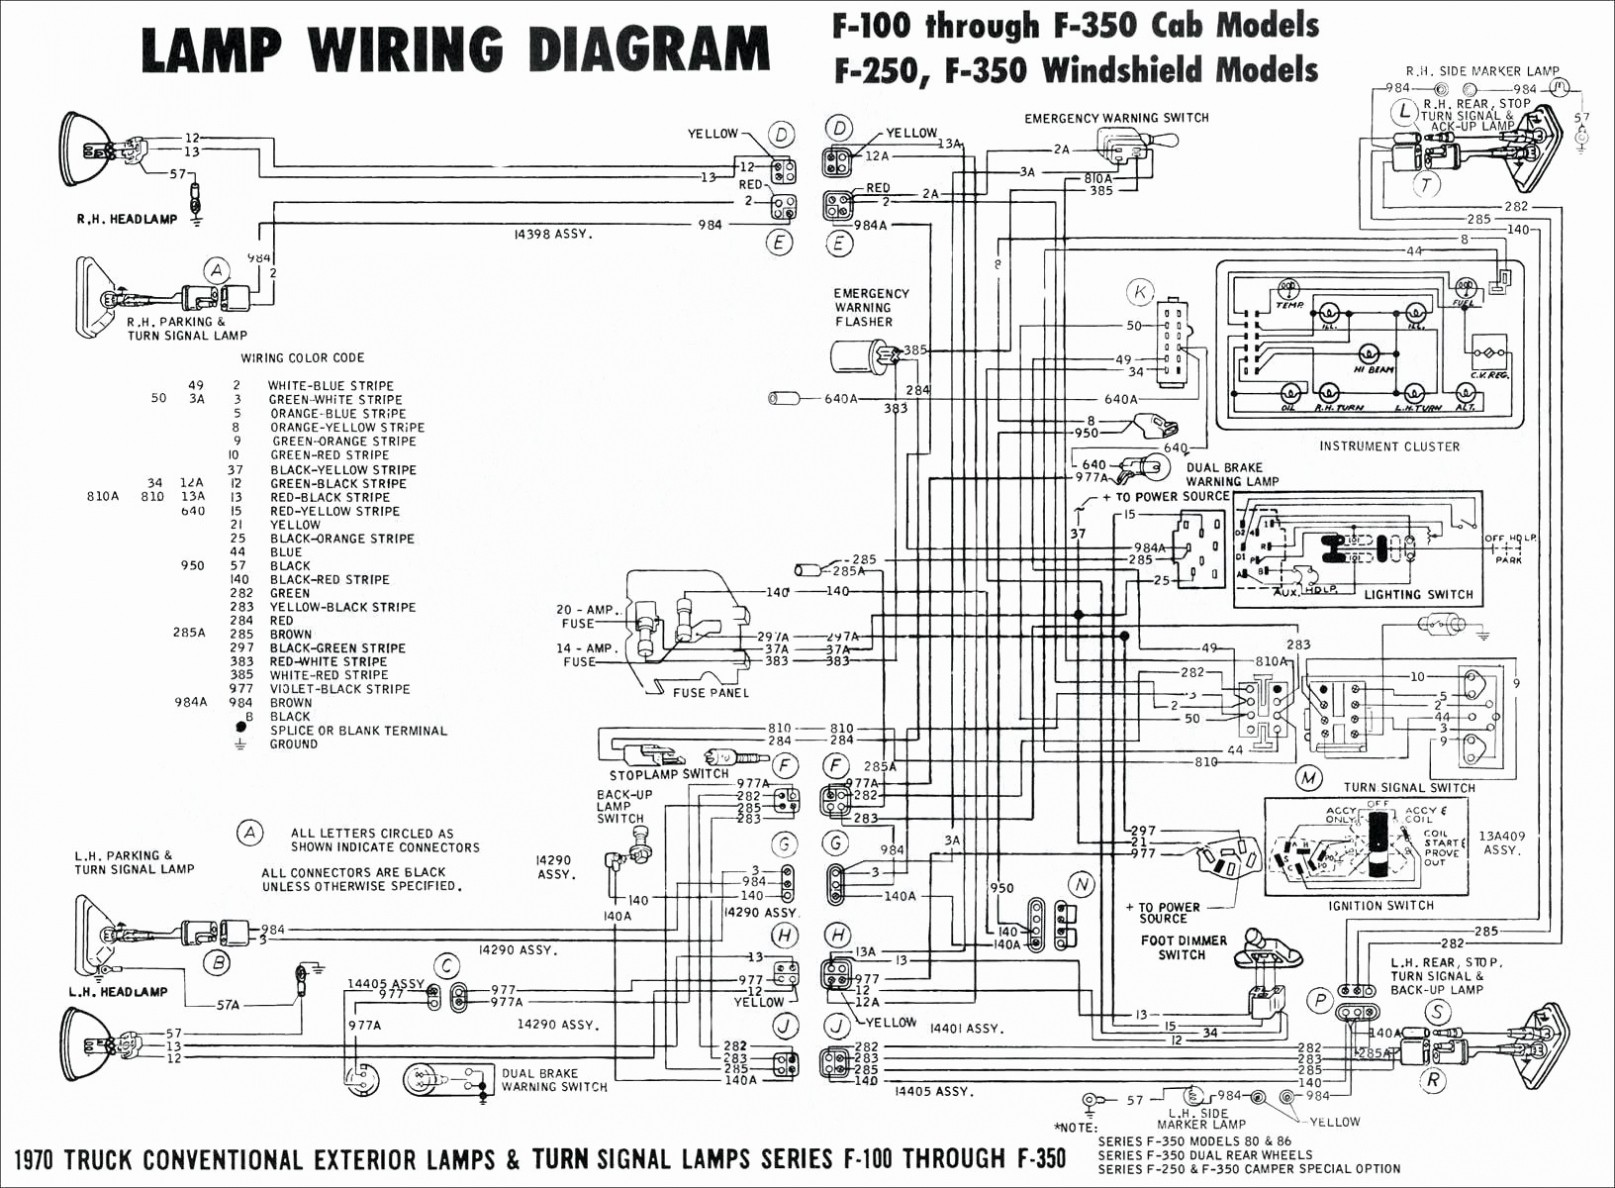 John Deere F Wiring Schematic on john deere ignition wiring diagram, john deere 925 specs, john deere z925a commercial ztrak, john deere lawn tractor wiring, john deere front snow blower, john deere gt235, john deere w engine, john deere gator snow blower attachment, john deere l111 snowblower attachment, john deere yanmar engine parts, john deere riding mowers, john deere electrical schematics, john deere front mower, john deere moco 946,